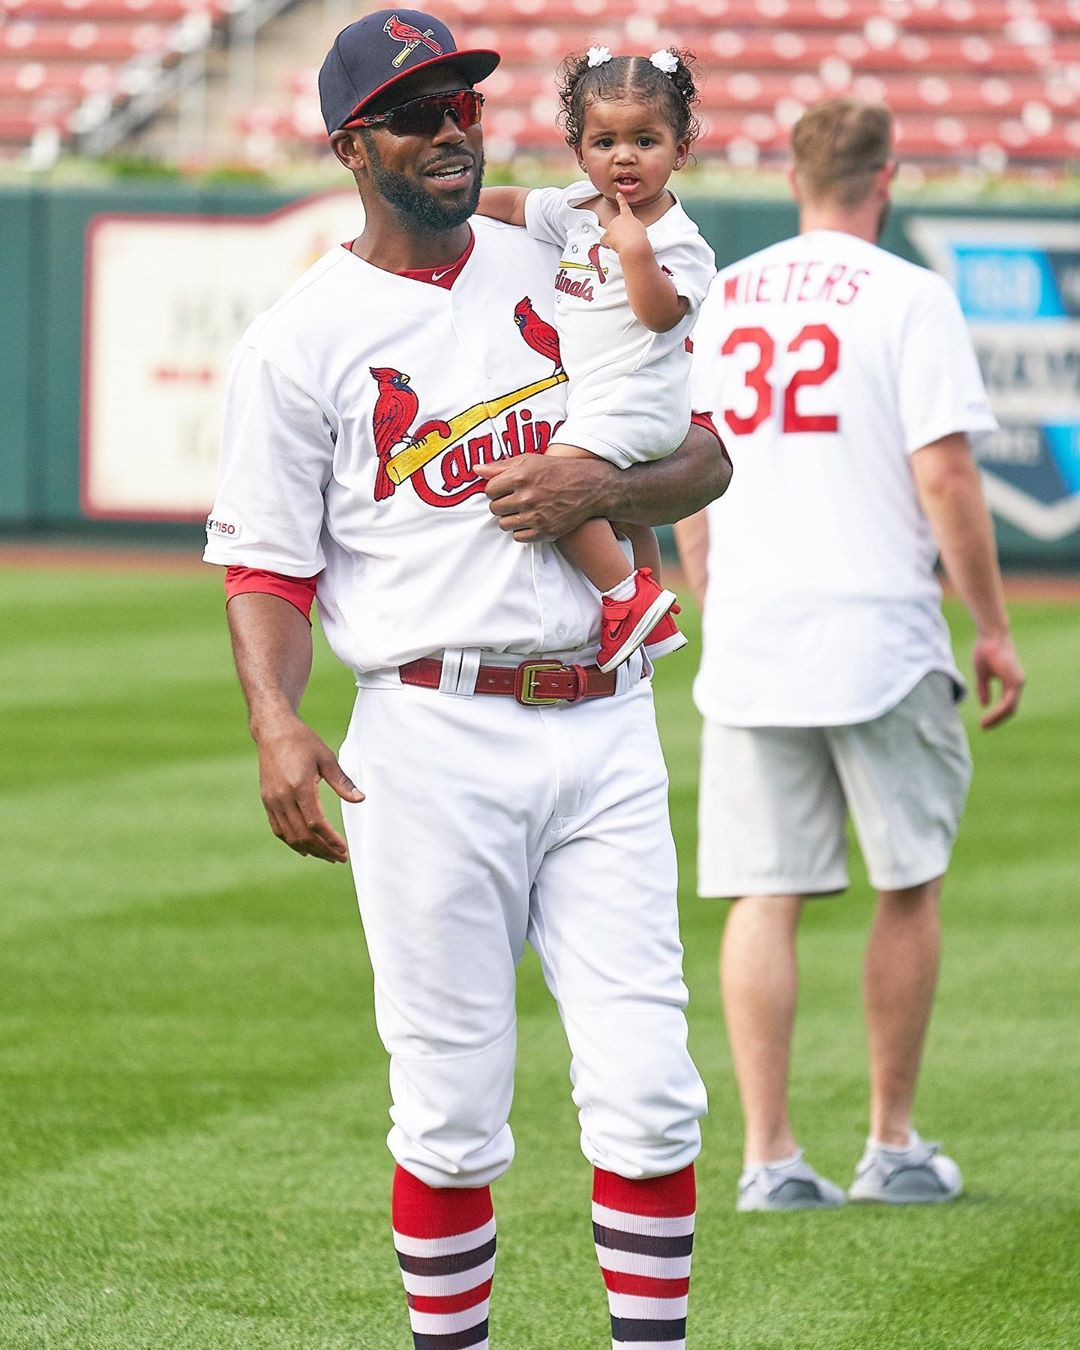 Dexter Fowler On Instagram Family Day St Louis Cardinals Baseball St Louis Baseball Cardinals Baseball